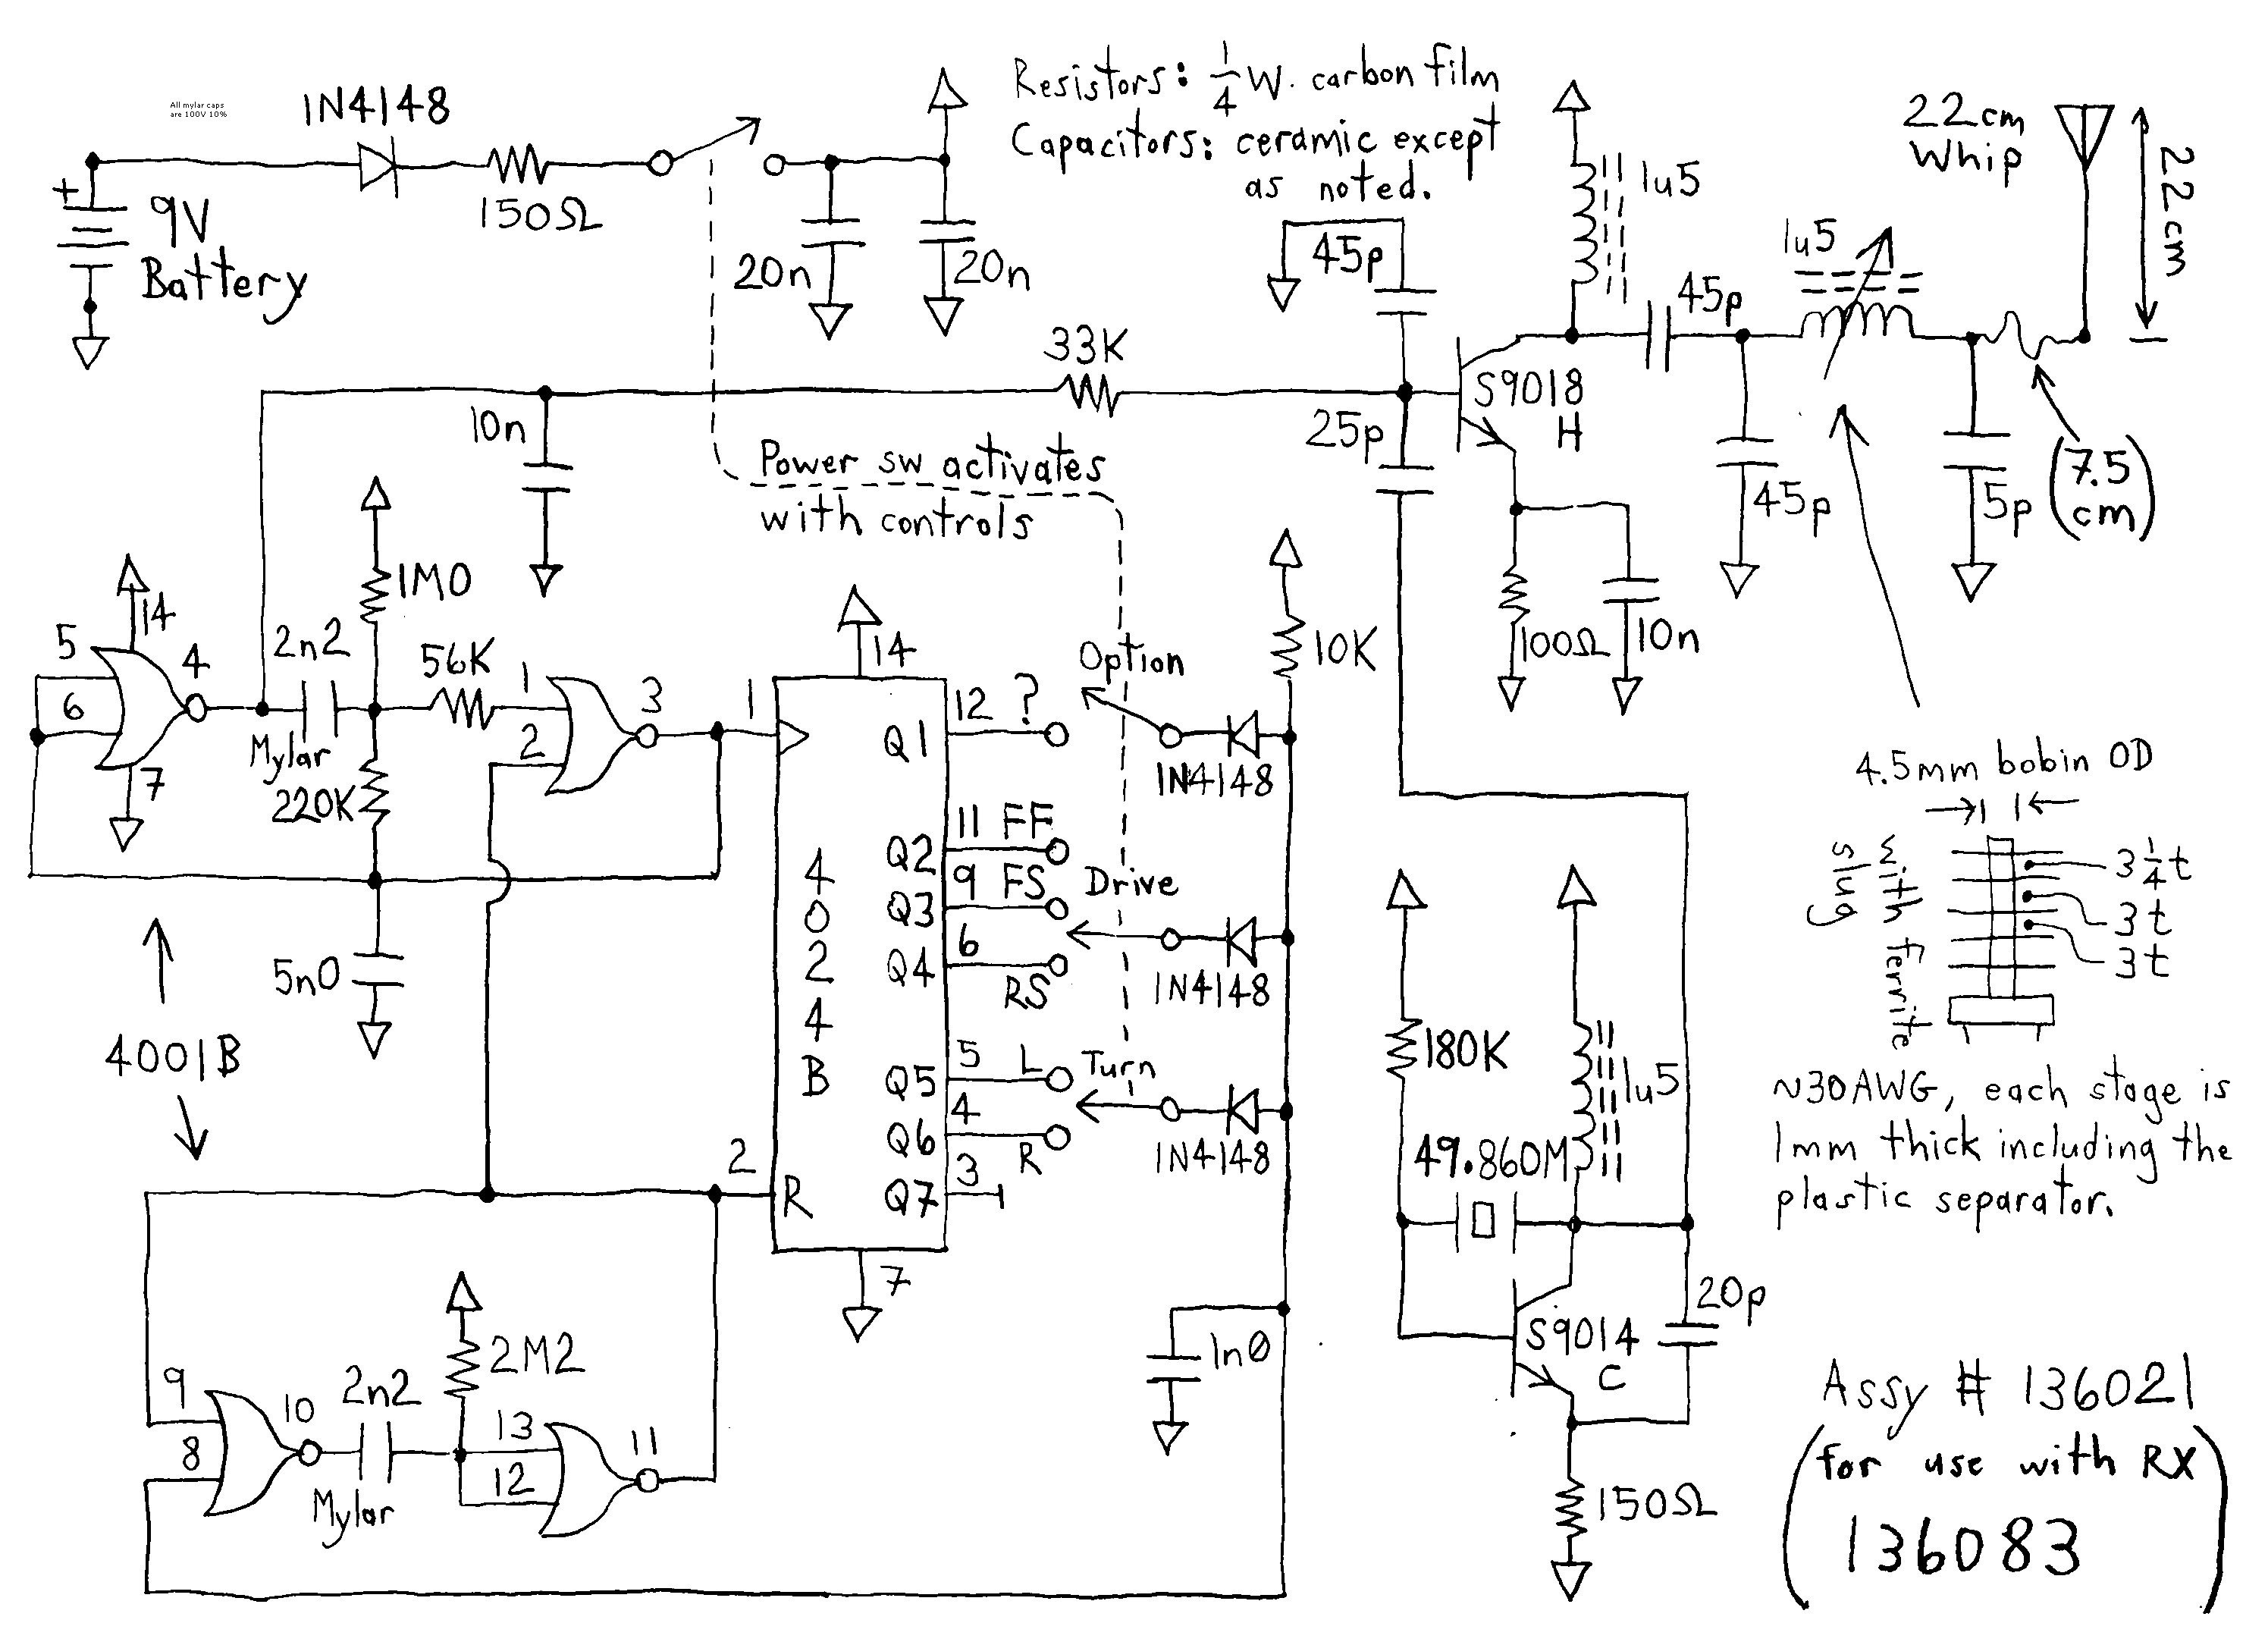 wiring diagram bridge rectifier Download-Wiring Diagram Bridge Rectifier Refrence Unique Bridge Rectifier Circuit Diagram 7-r